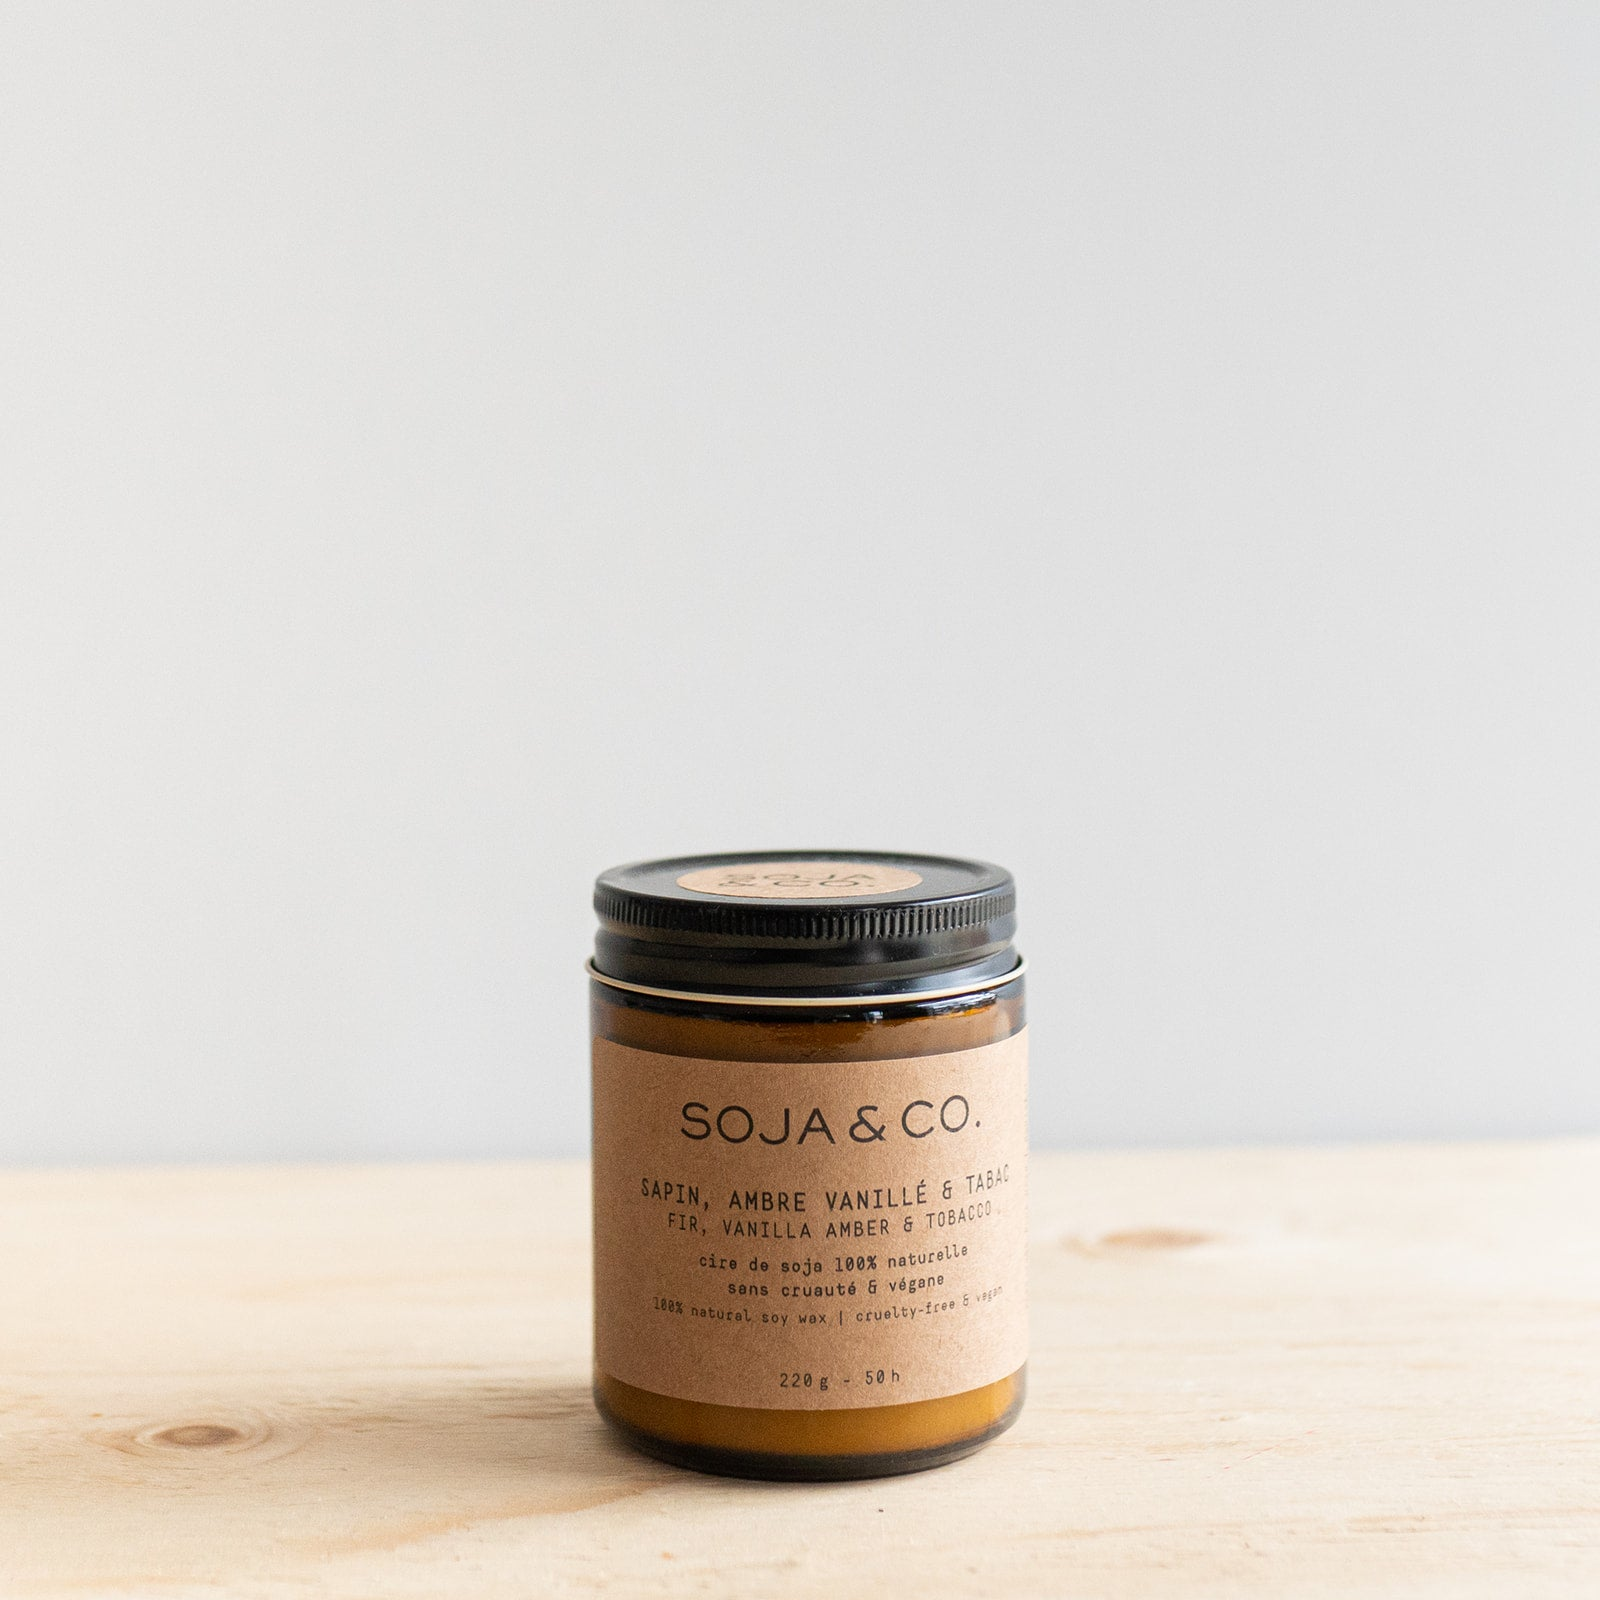 Fir, Vanilla Amber & Tobacco Candle by SOJA&CO.